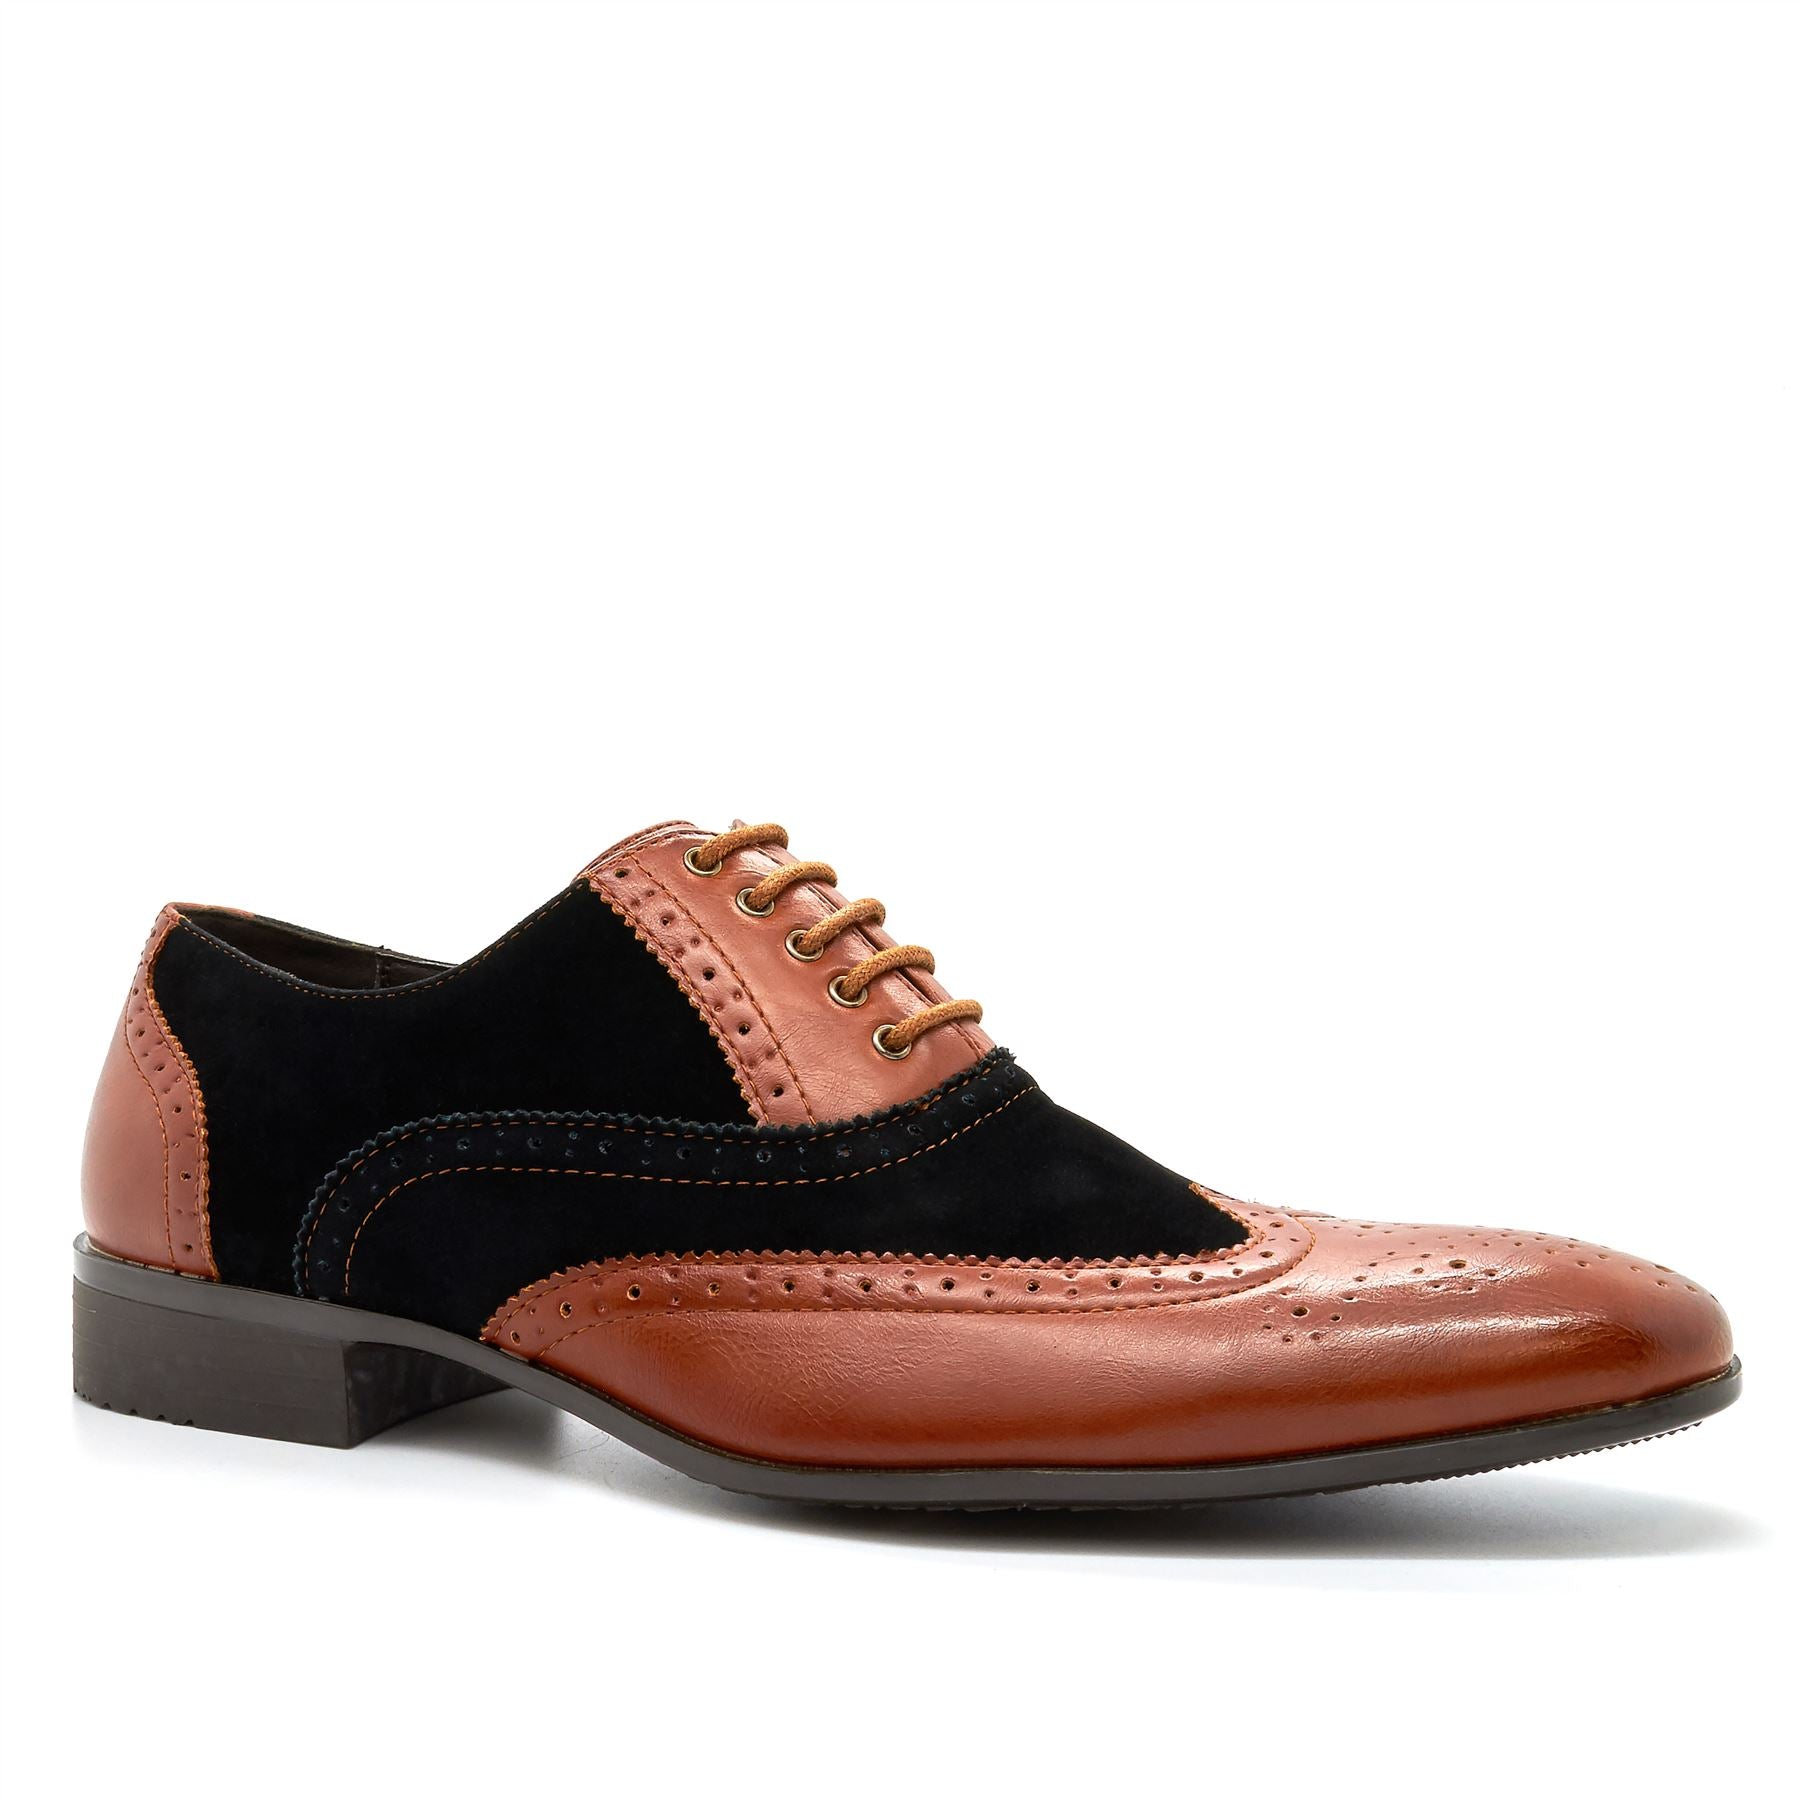 Brown & Black Lace Up Oxford Shoes